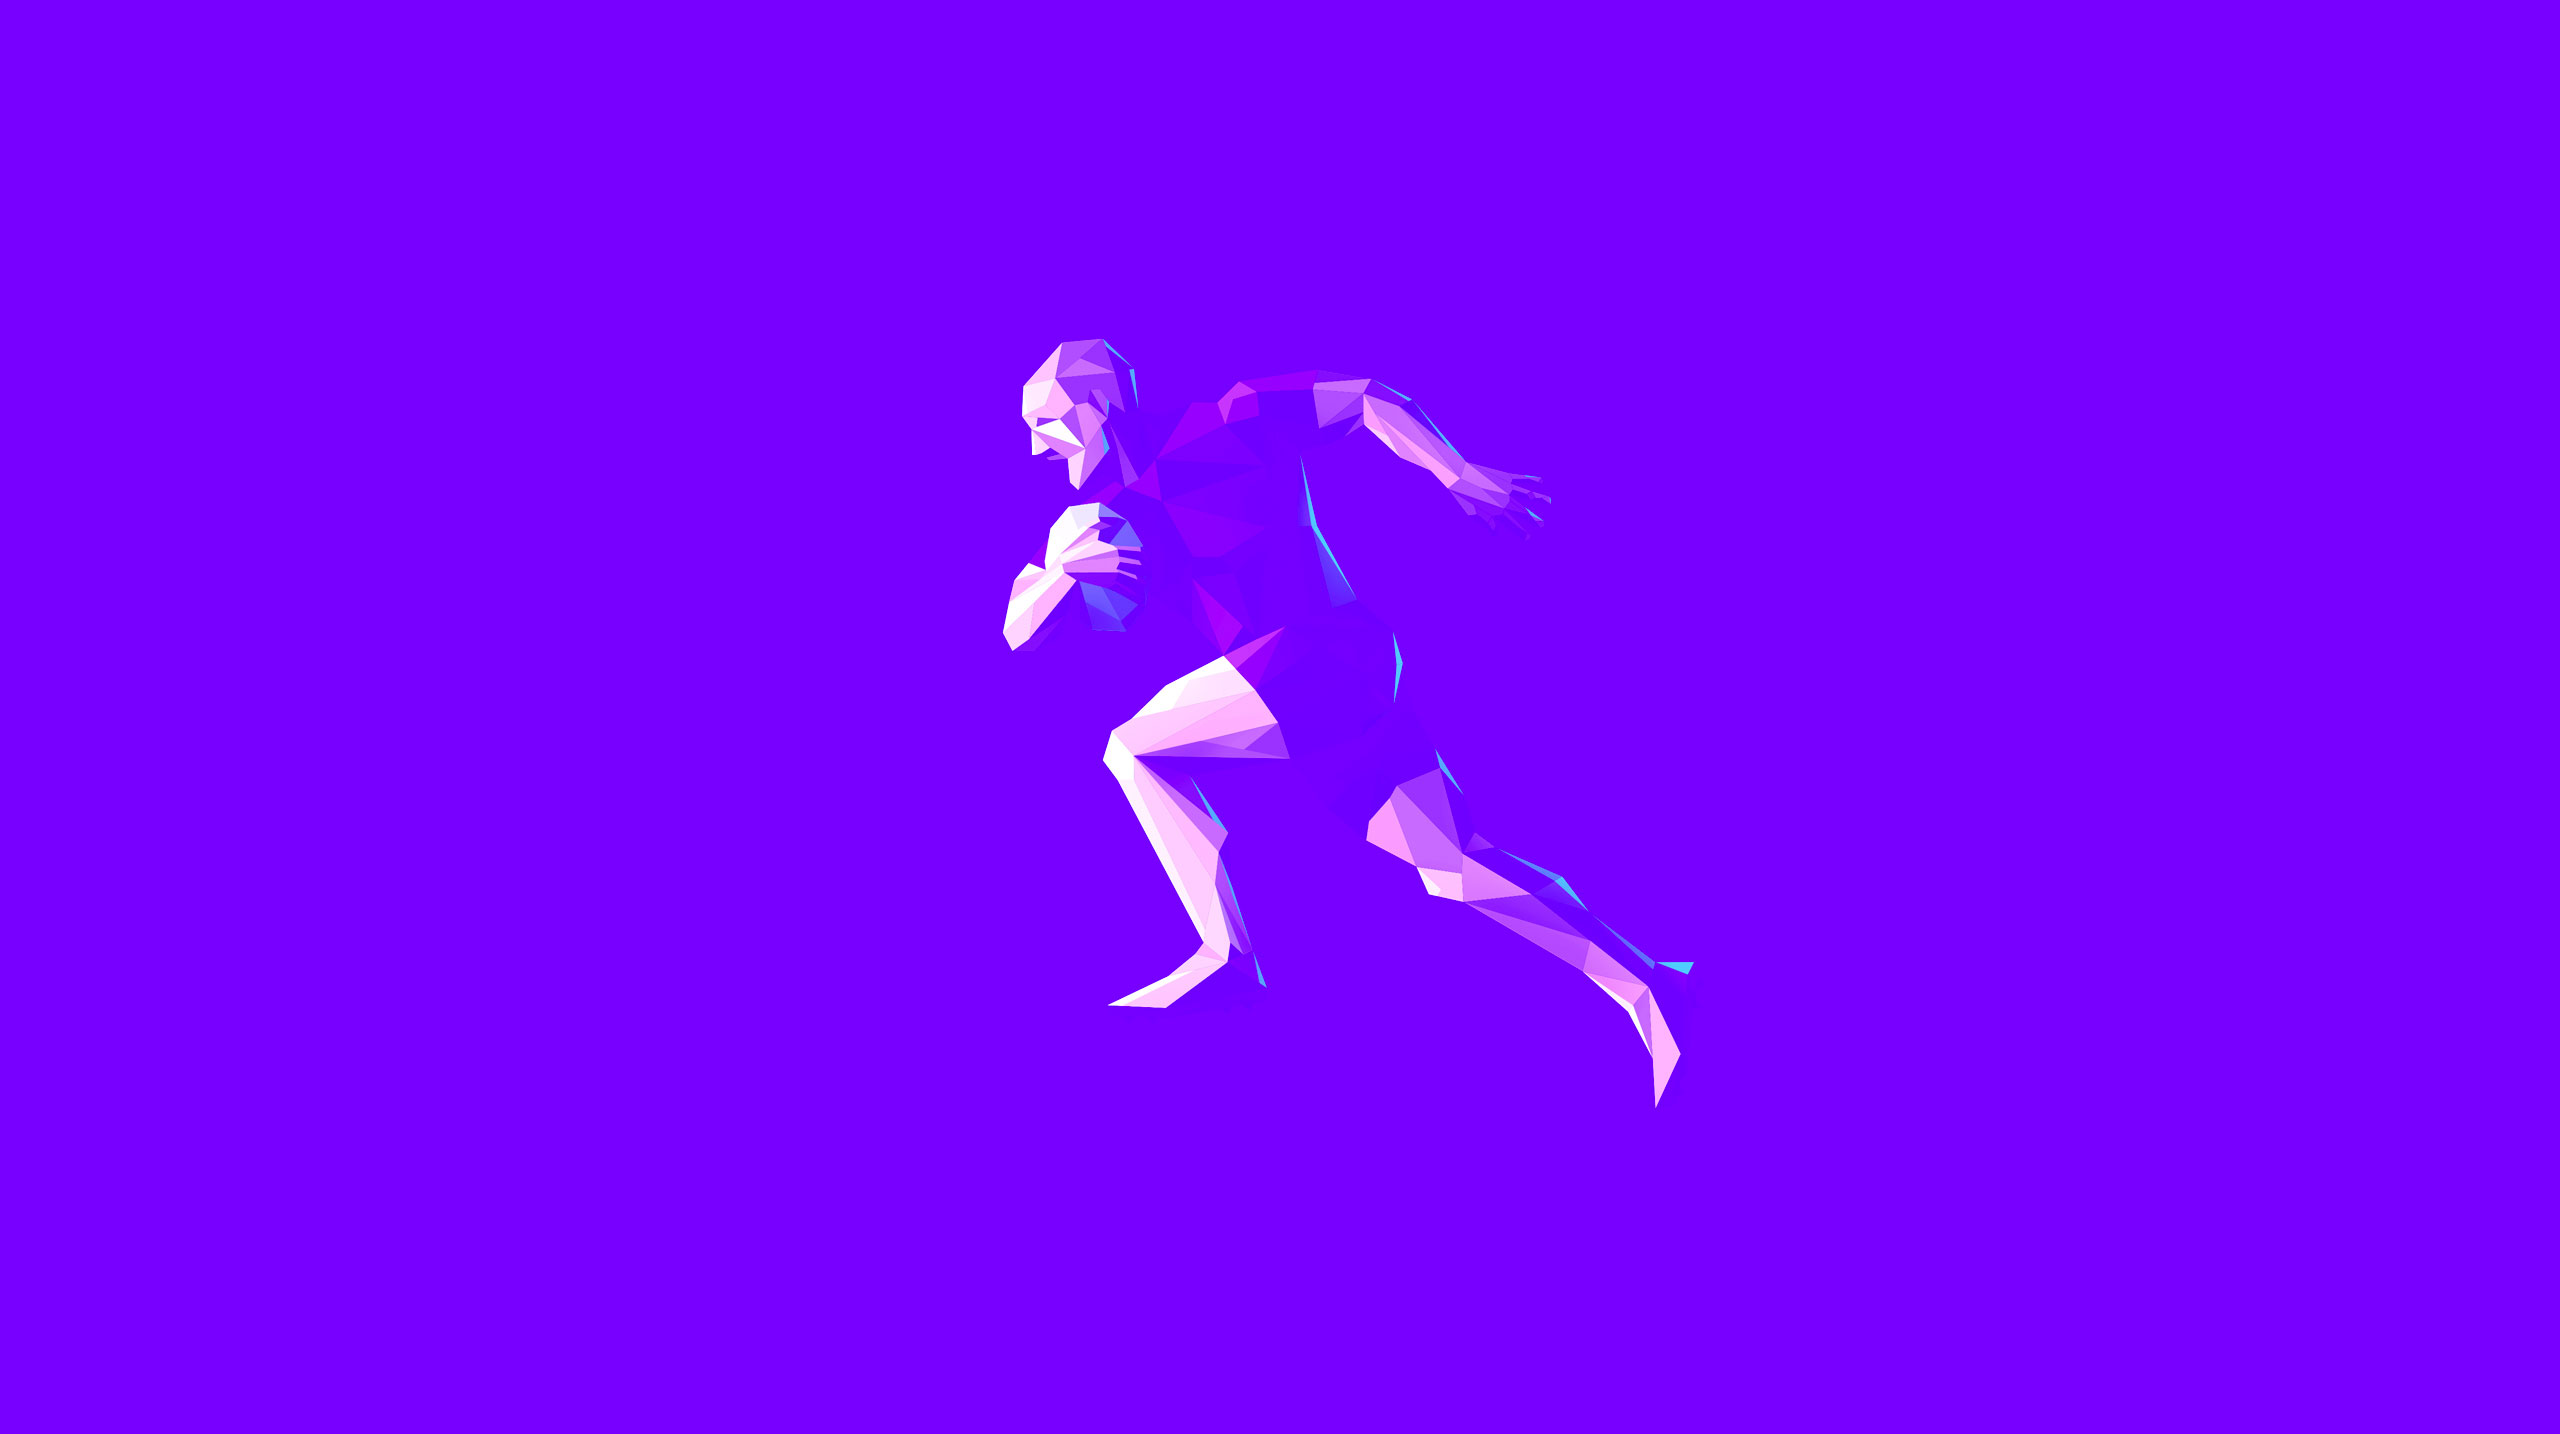 RugbyPlayer_LowPoly_Illustration_02_w2560_quality60